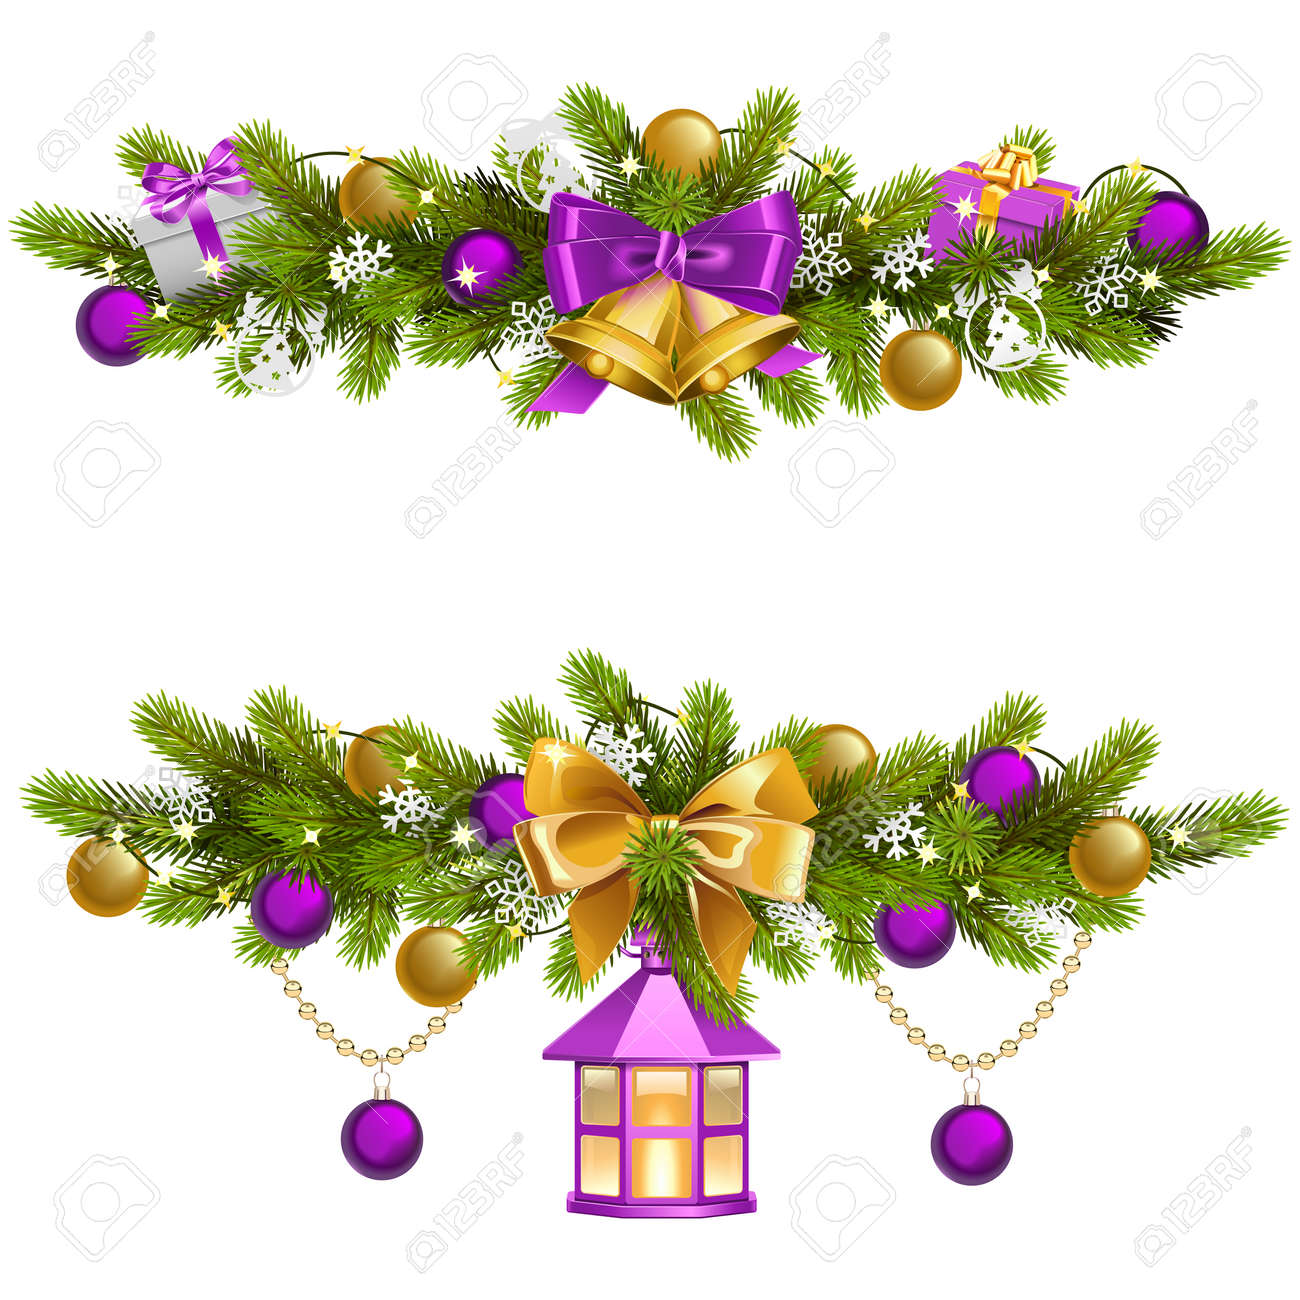 Vector Fir Decoration with Purple Decorations isolated on white background - 157101989